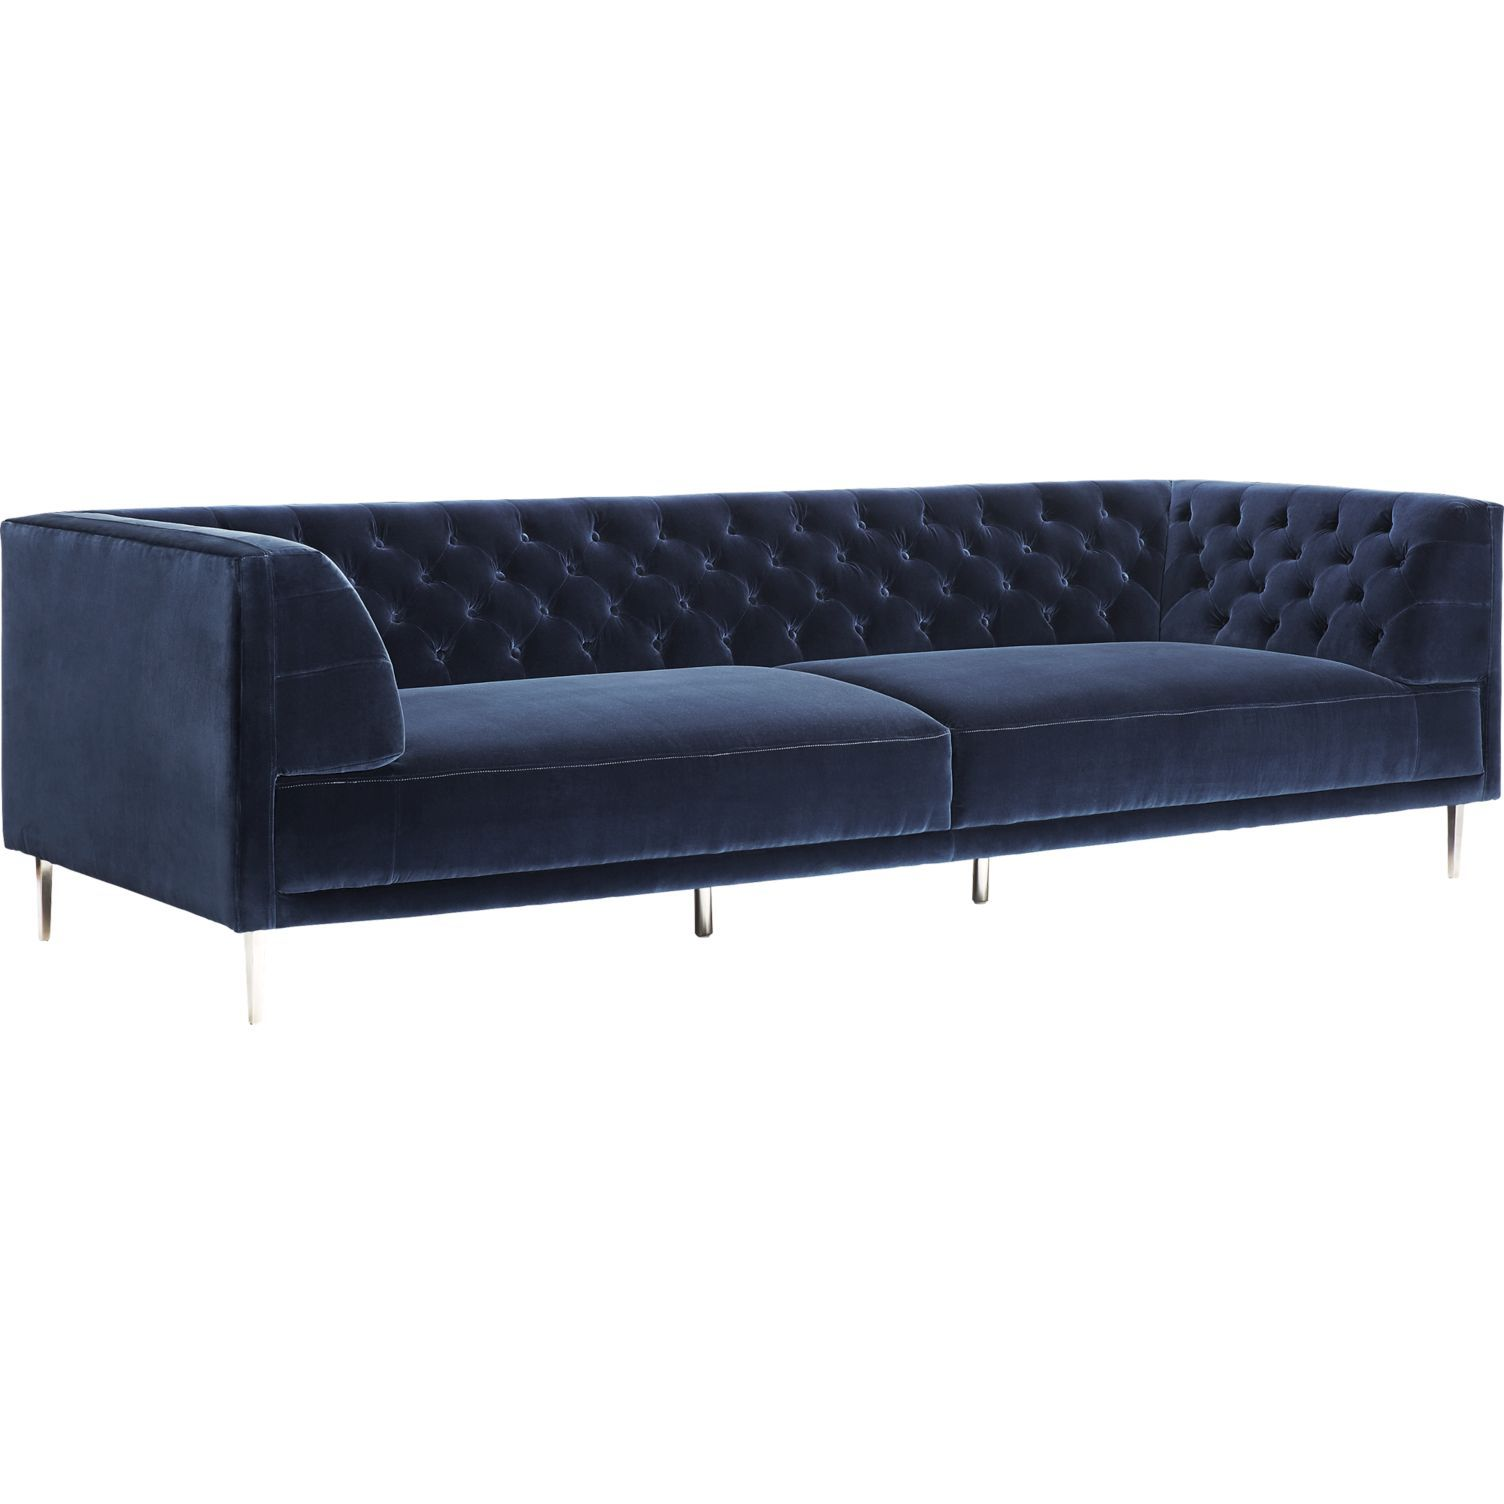 Magnificent Savile Midnight Blue Velvet Extra Large Sofa Reviews In Pabps2019 Chair Design Images Pabps2019Com